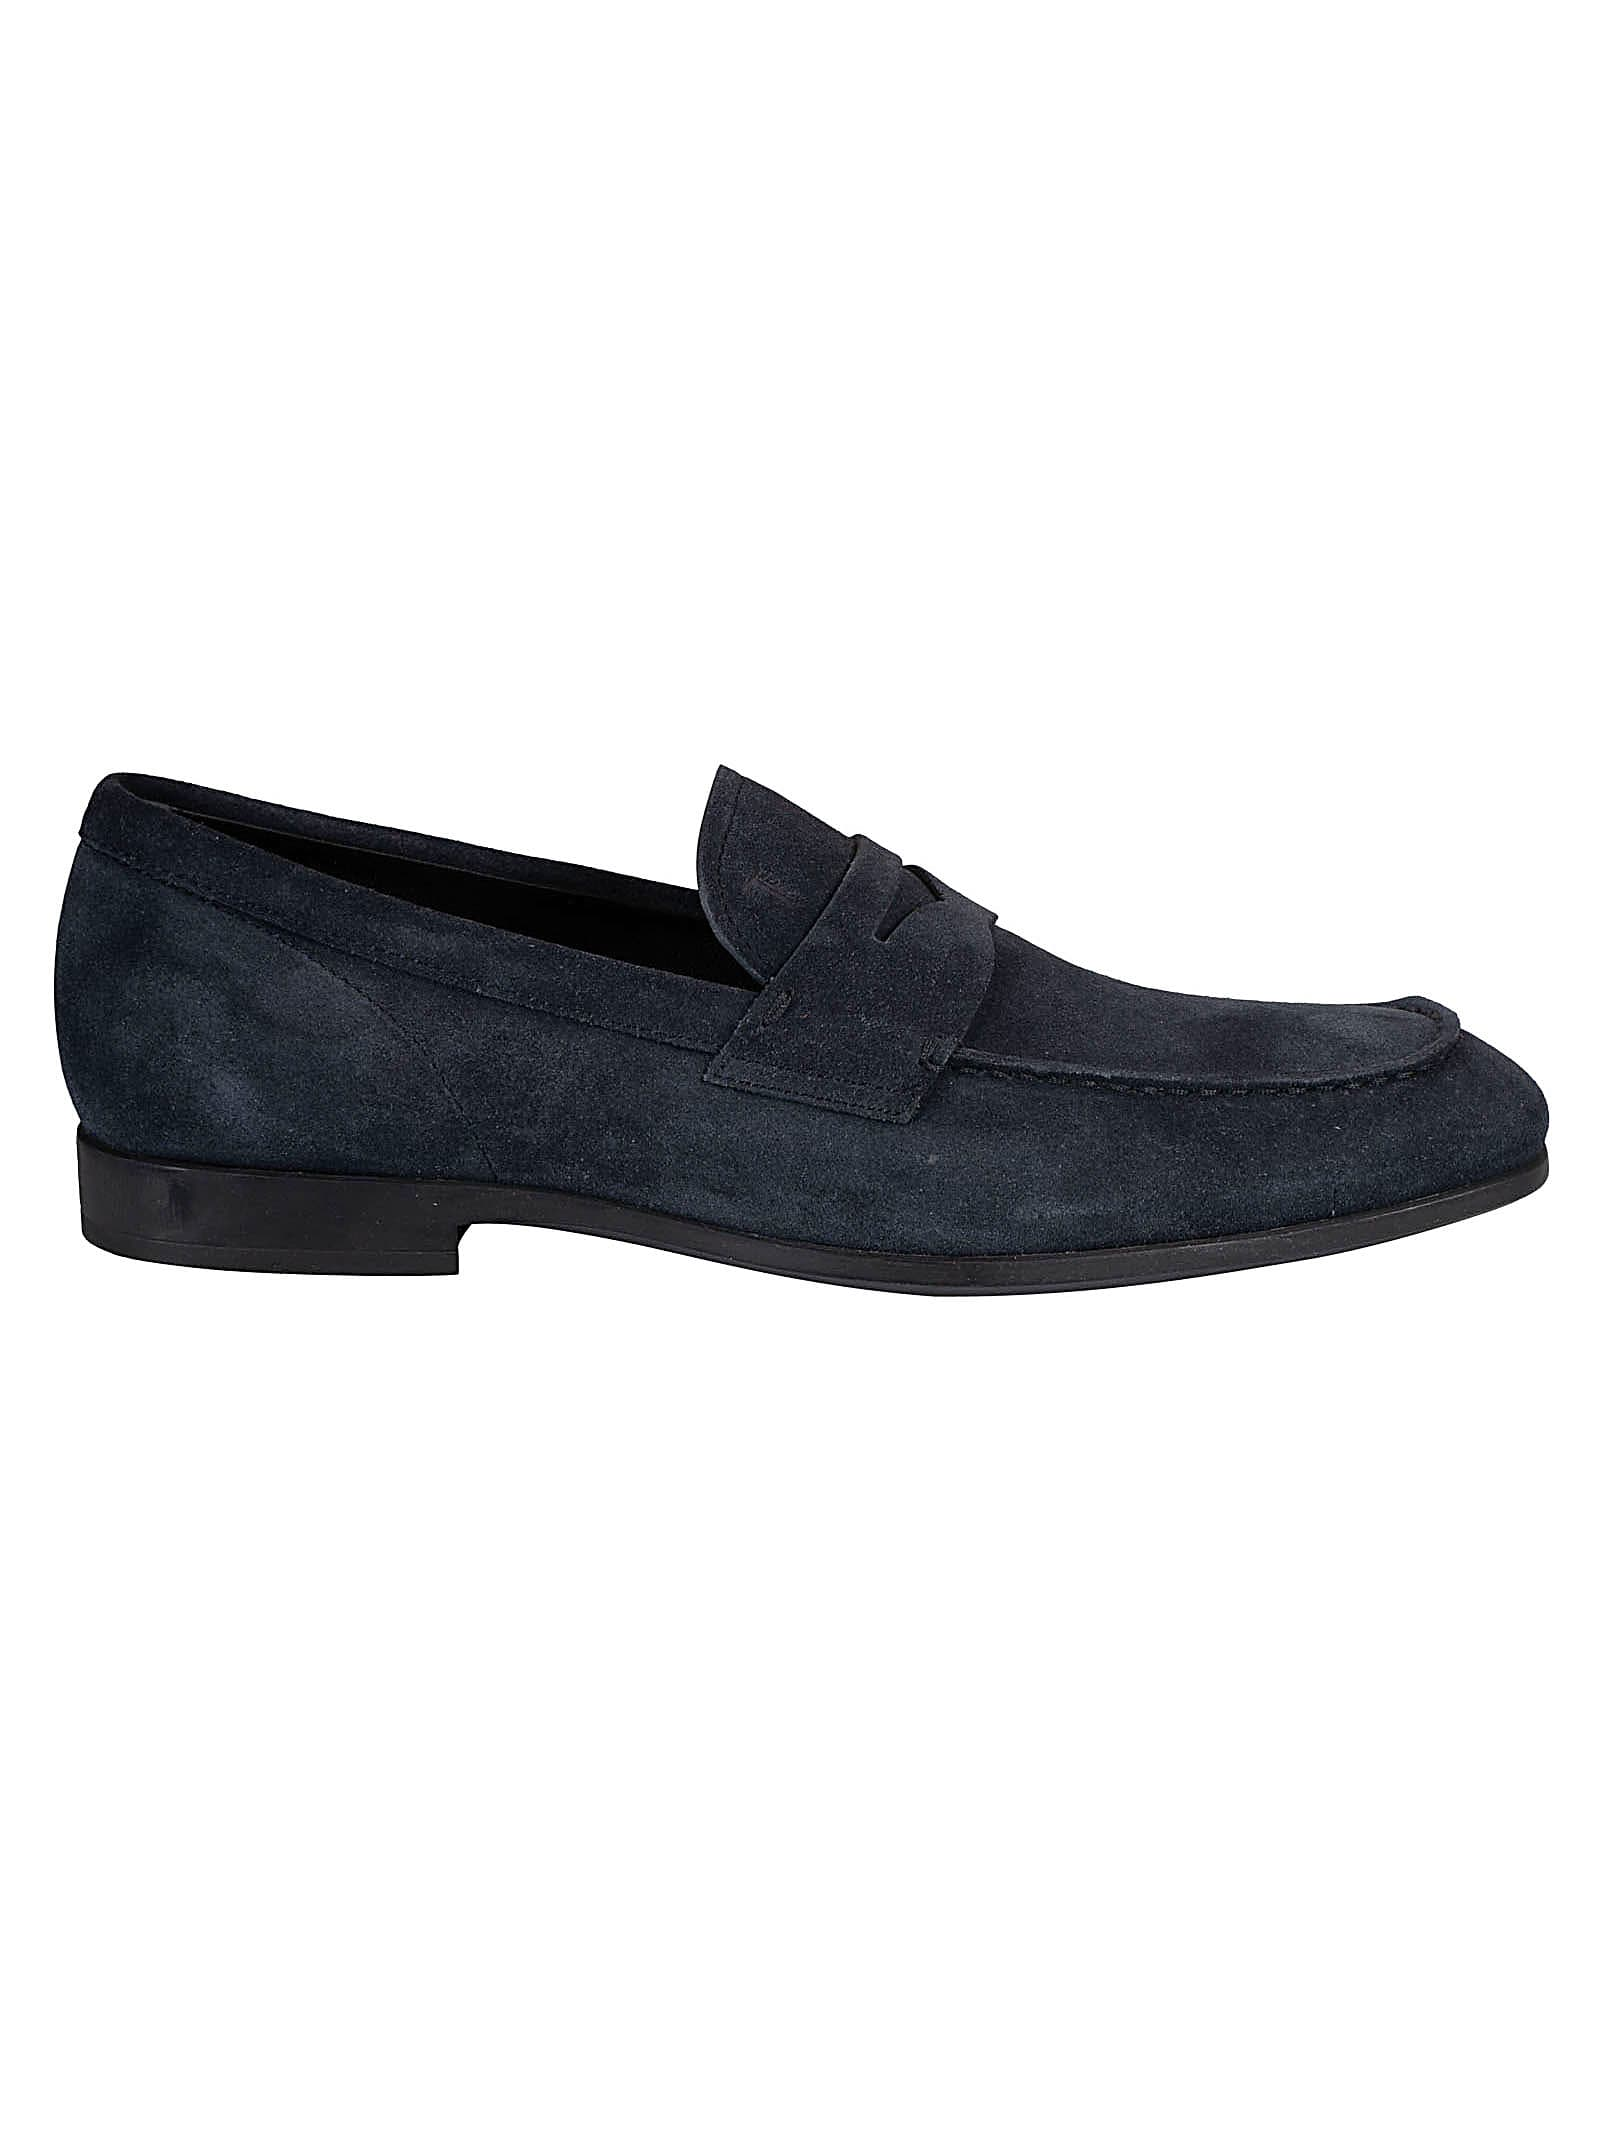 Tods Classic Slide-in Loafers